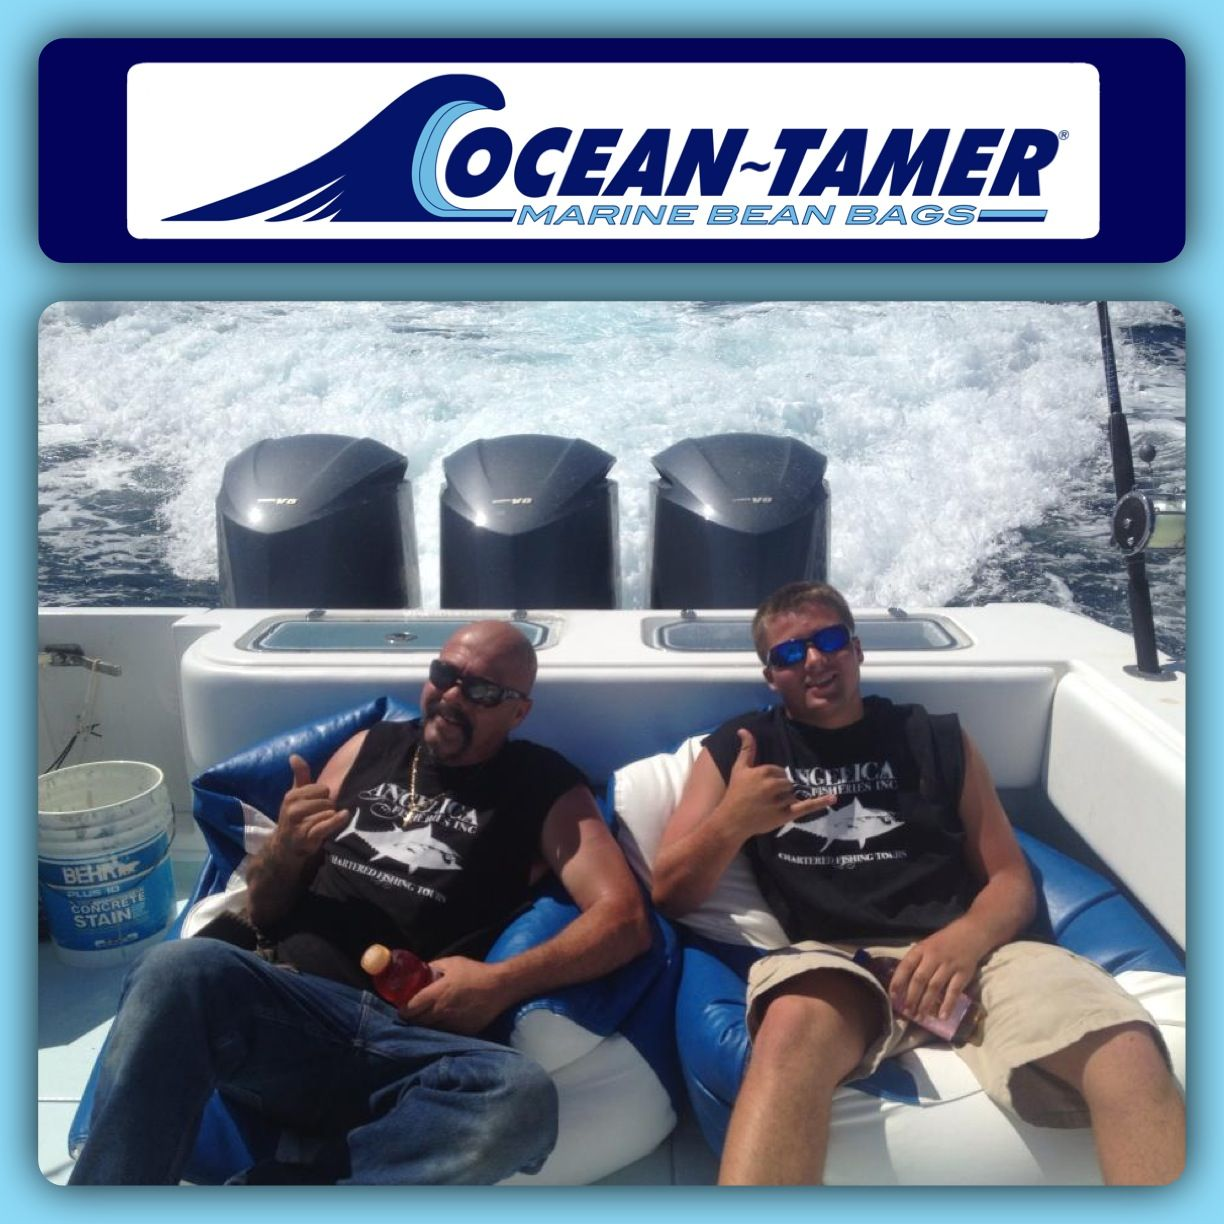 Marine Bean Bag Chairs Posture Pad For Chair Capt Dave Marciano And His Son Joe From F V Hard